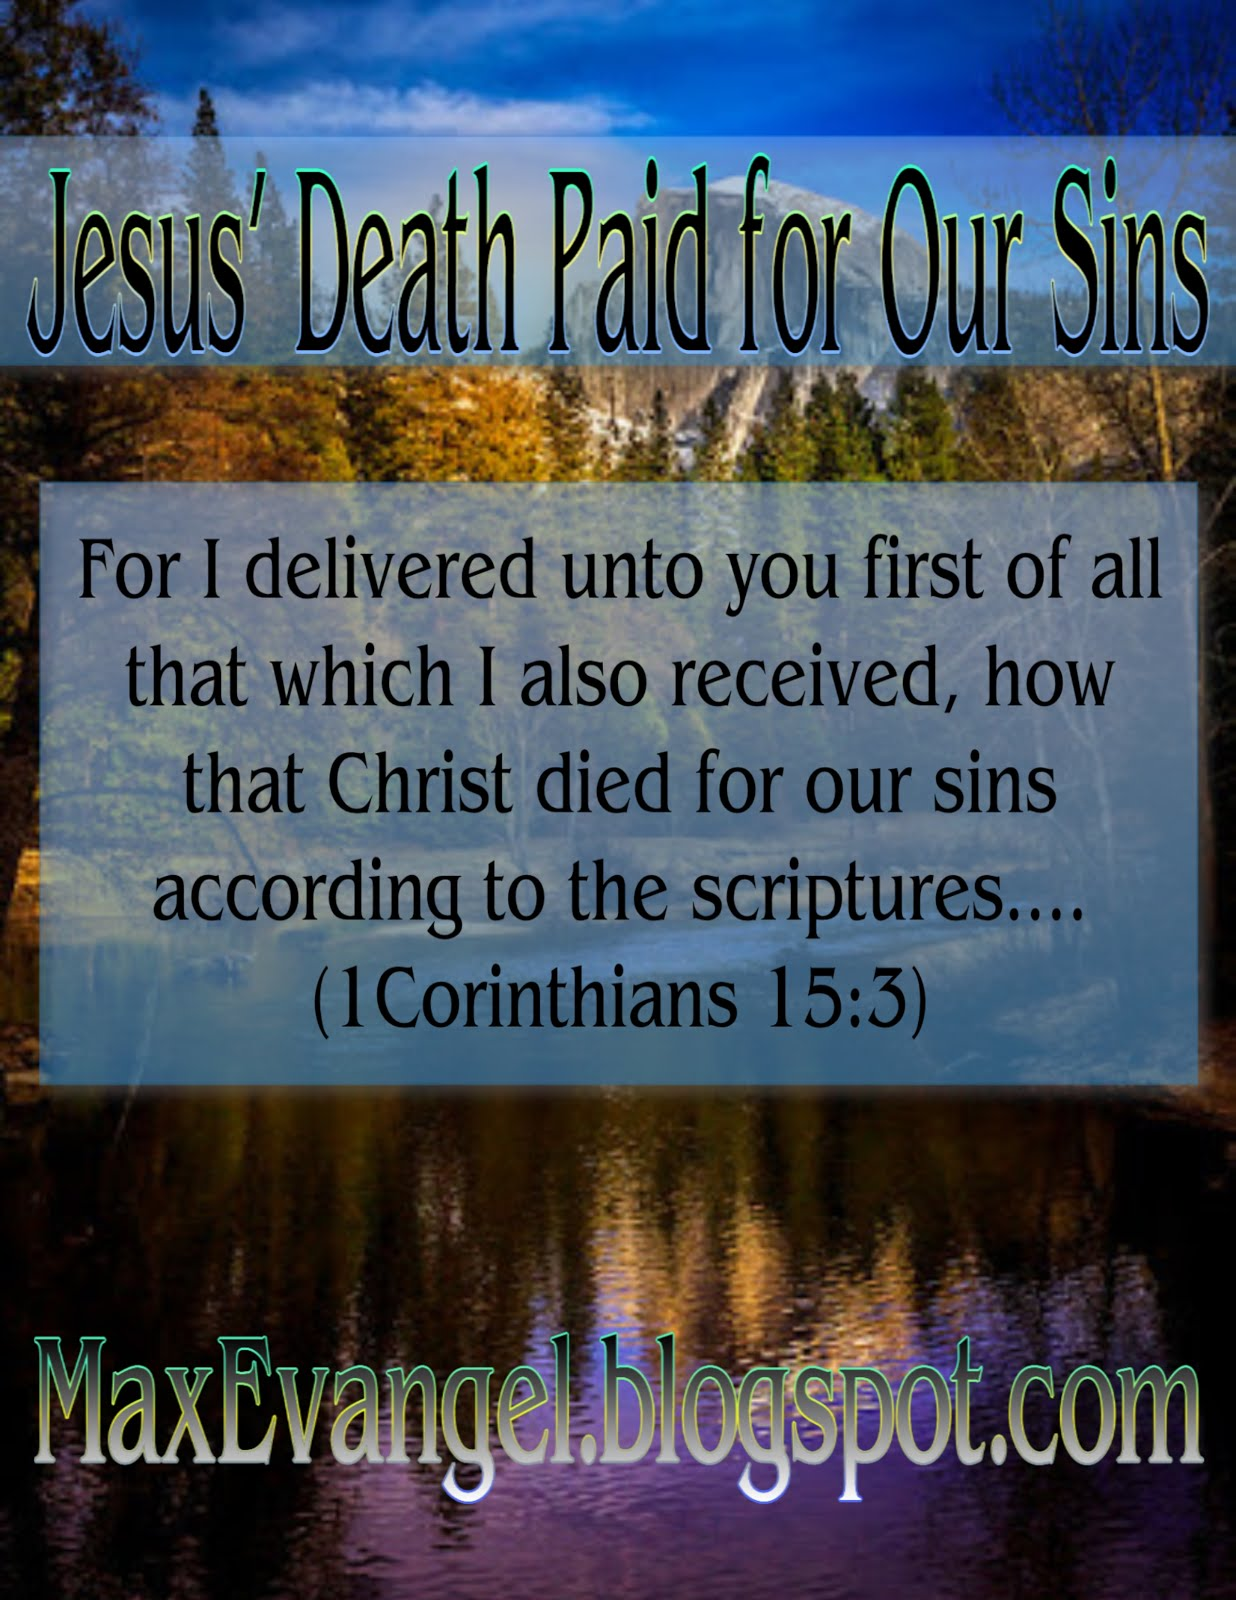 Jesus' Death Paid for Our Sins